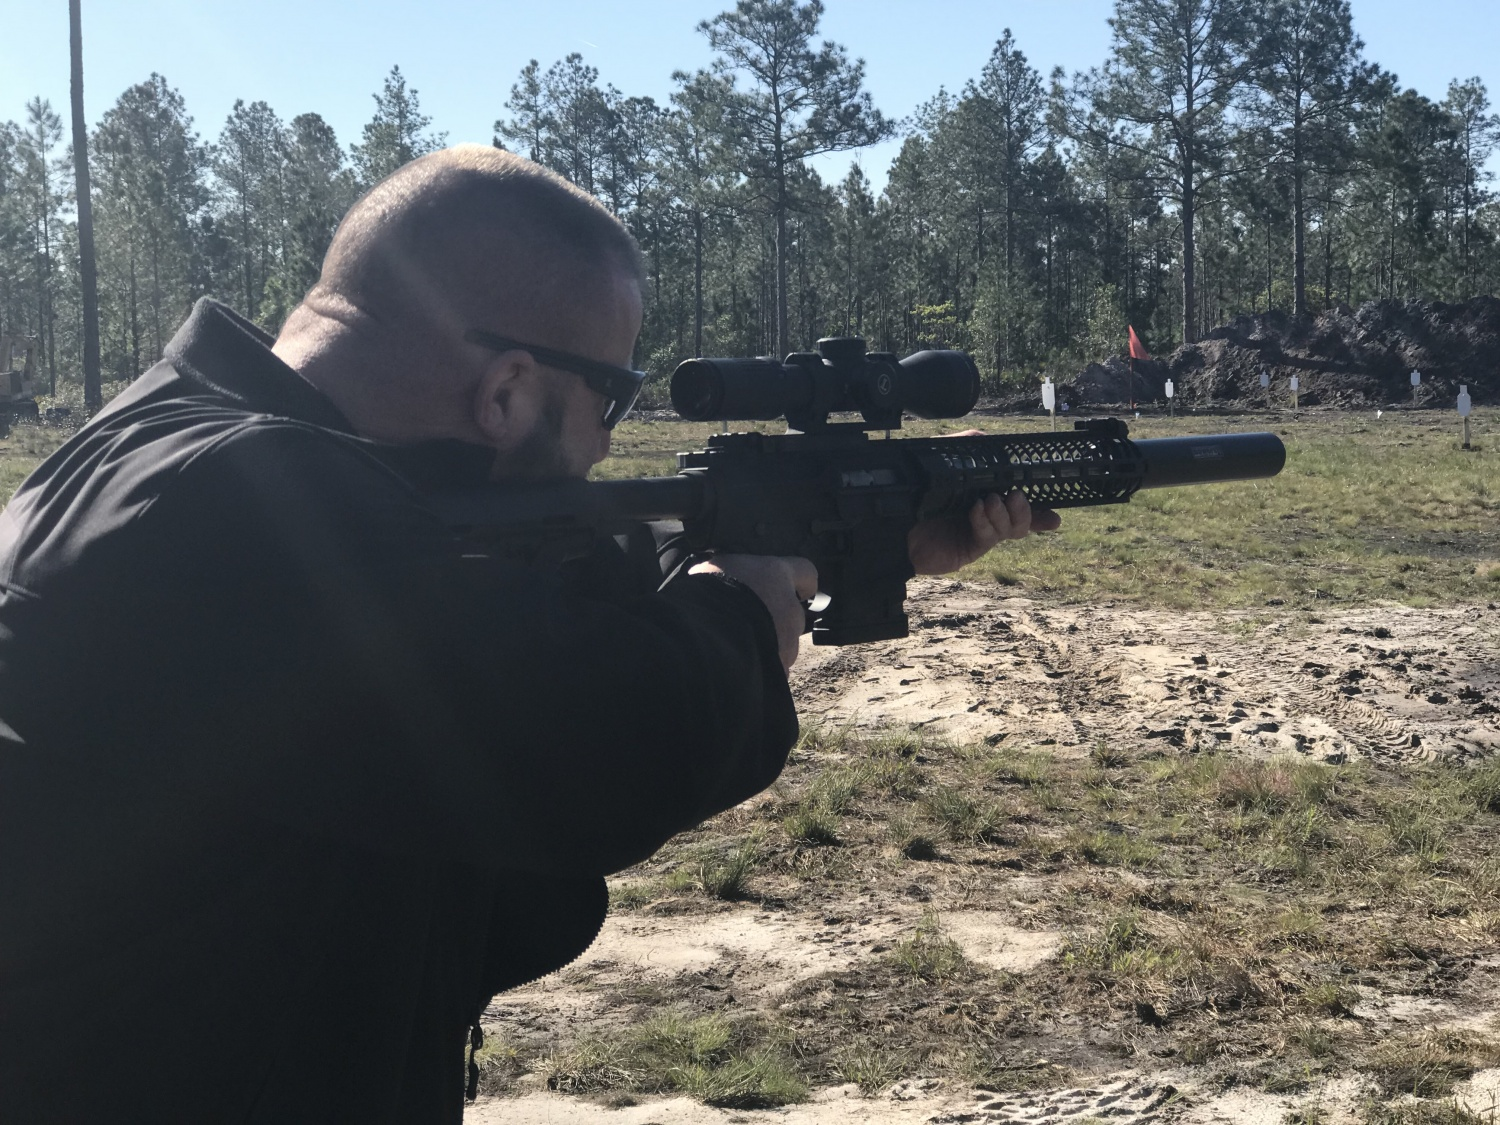 Shawn shooting a Spike's AR-10 chambered in .416 Spike